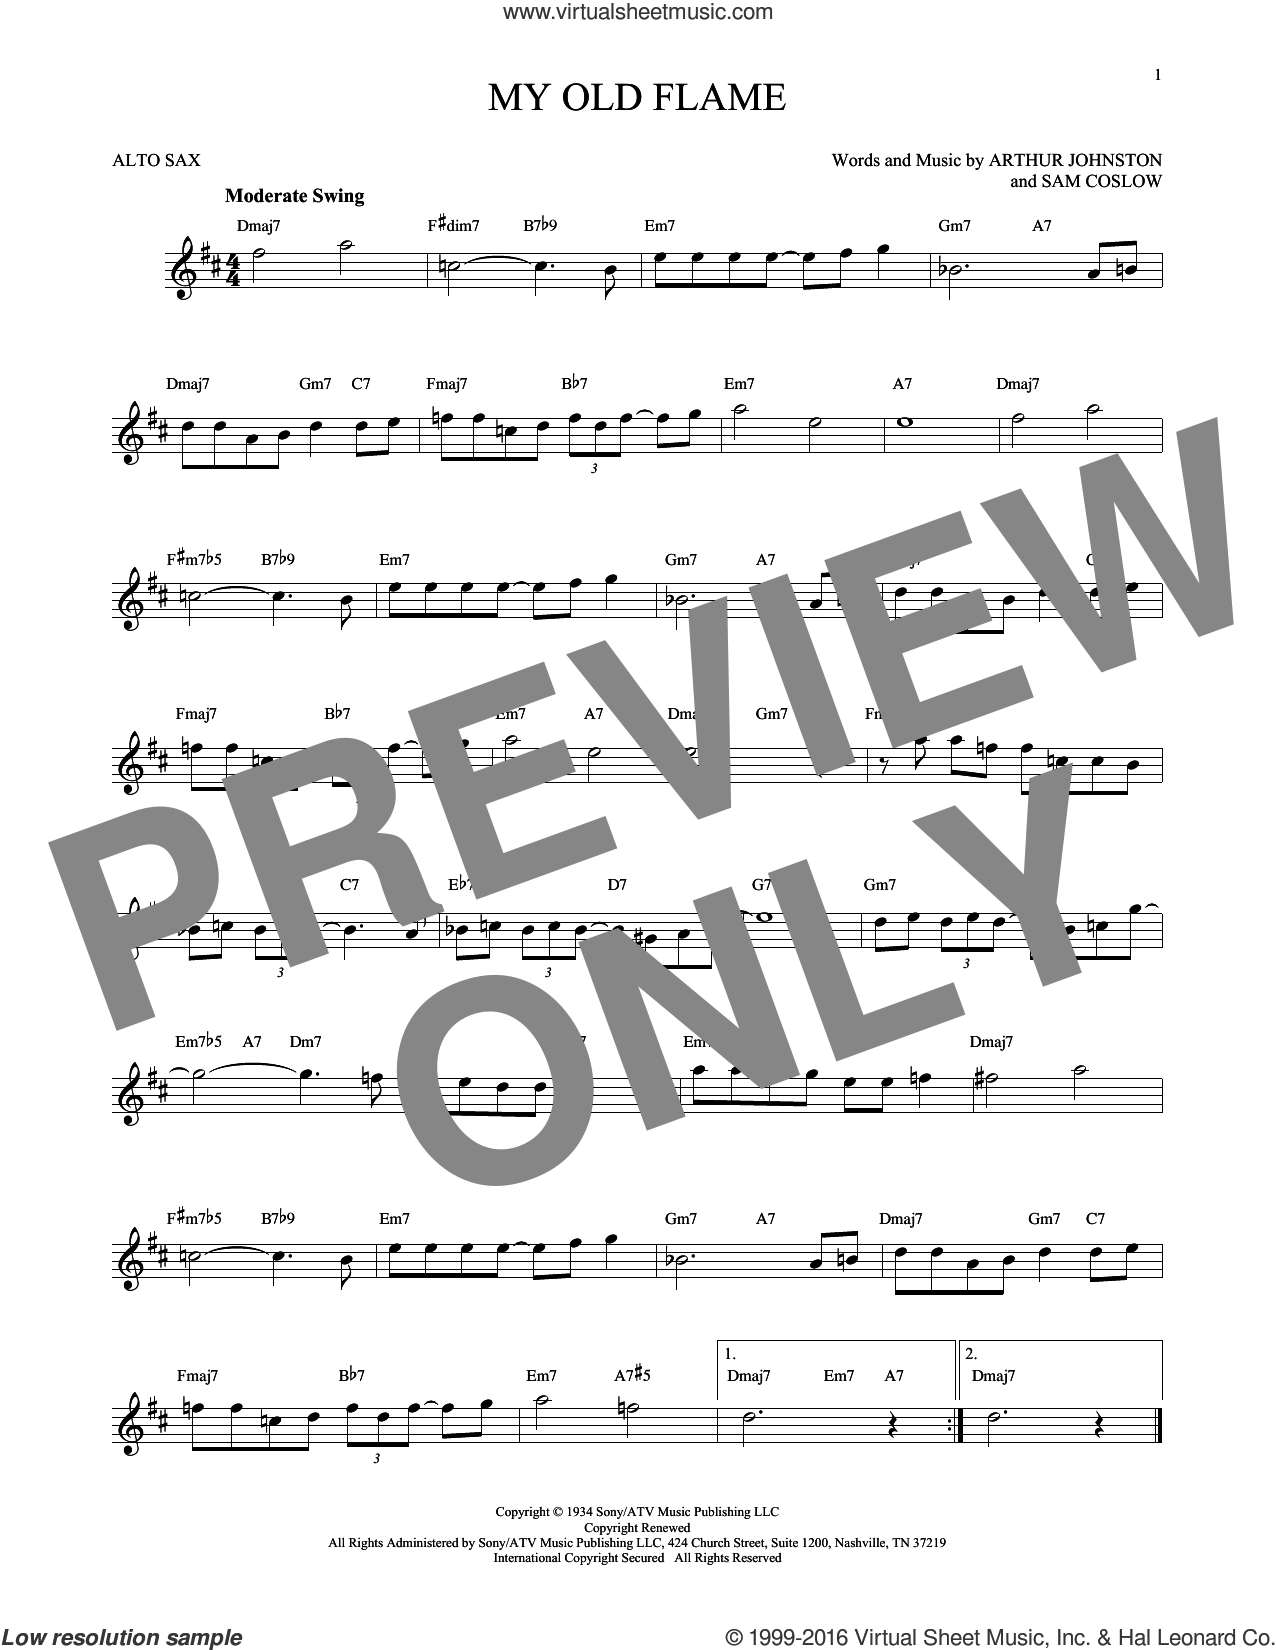 My Old Flame sheet music for alto saxophone solo by Arthur Johnston, Peggy Lee and Sam Coslow, intermediate skill level